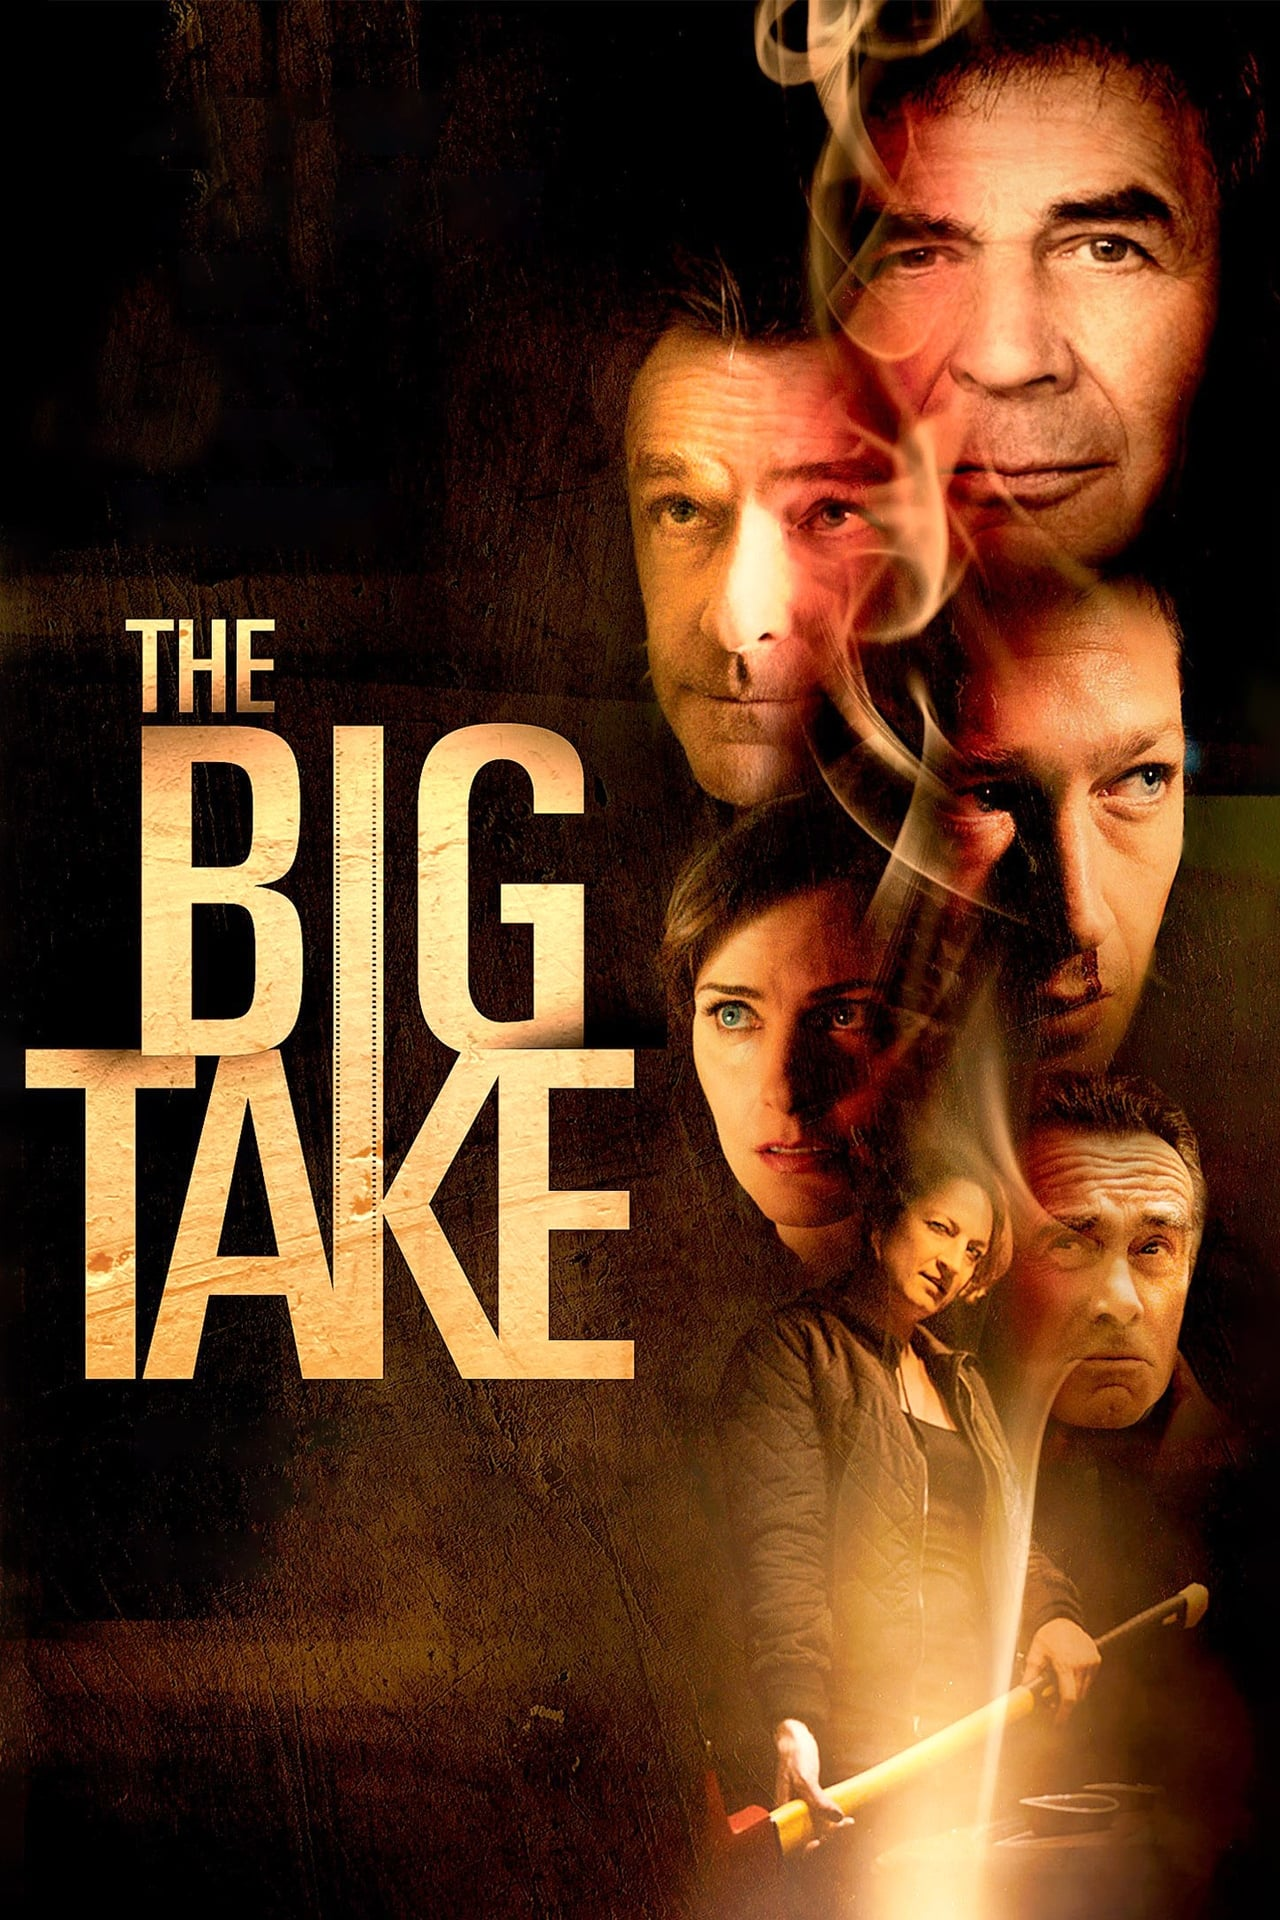 The Big Take (2018) putlockers cafe